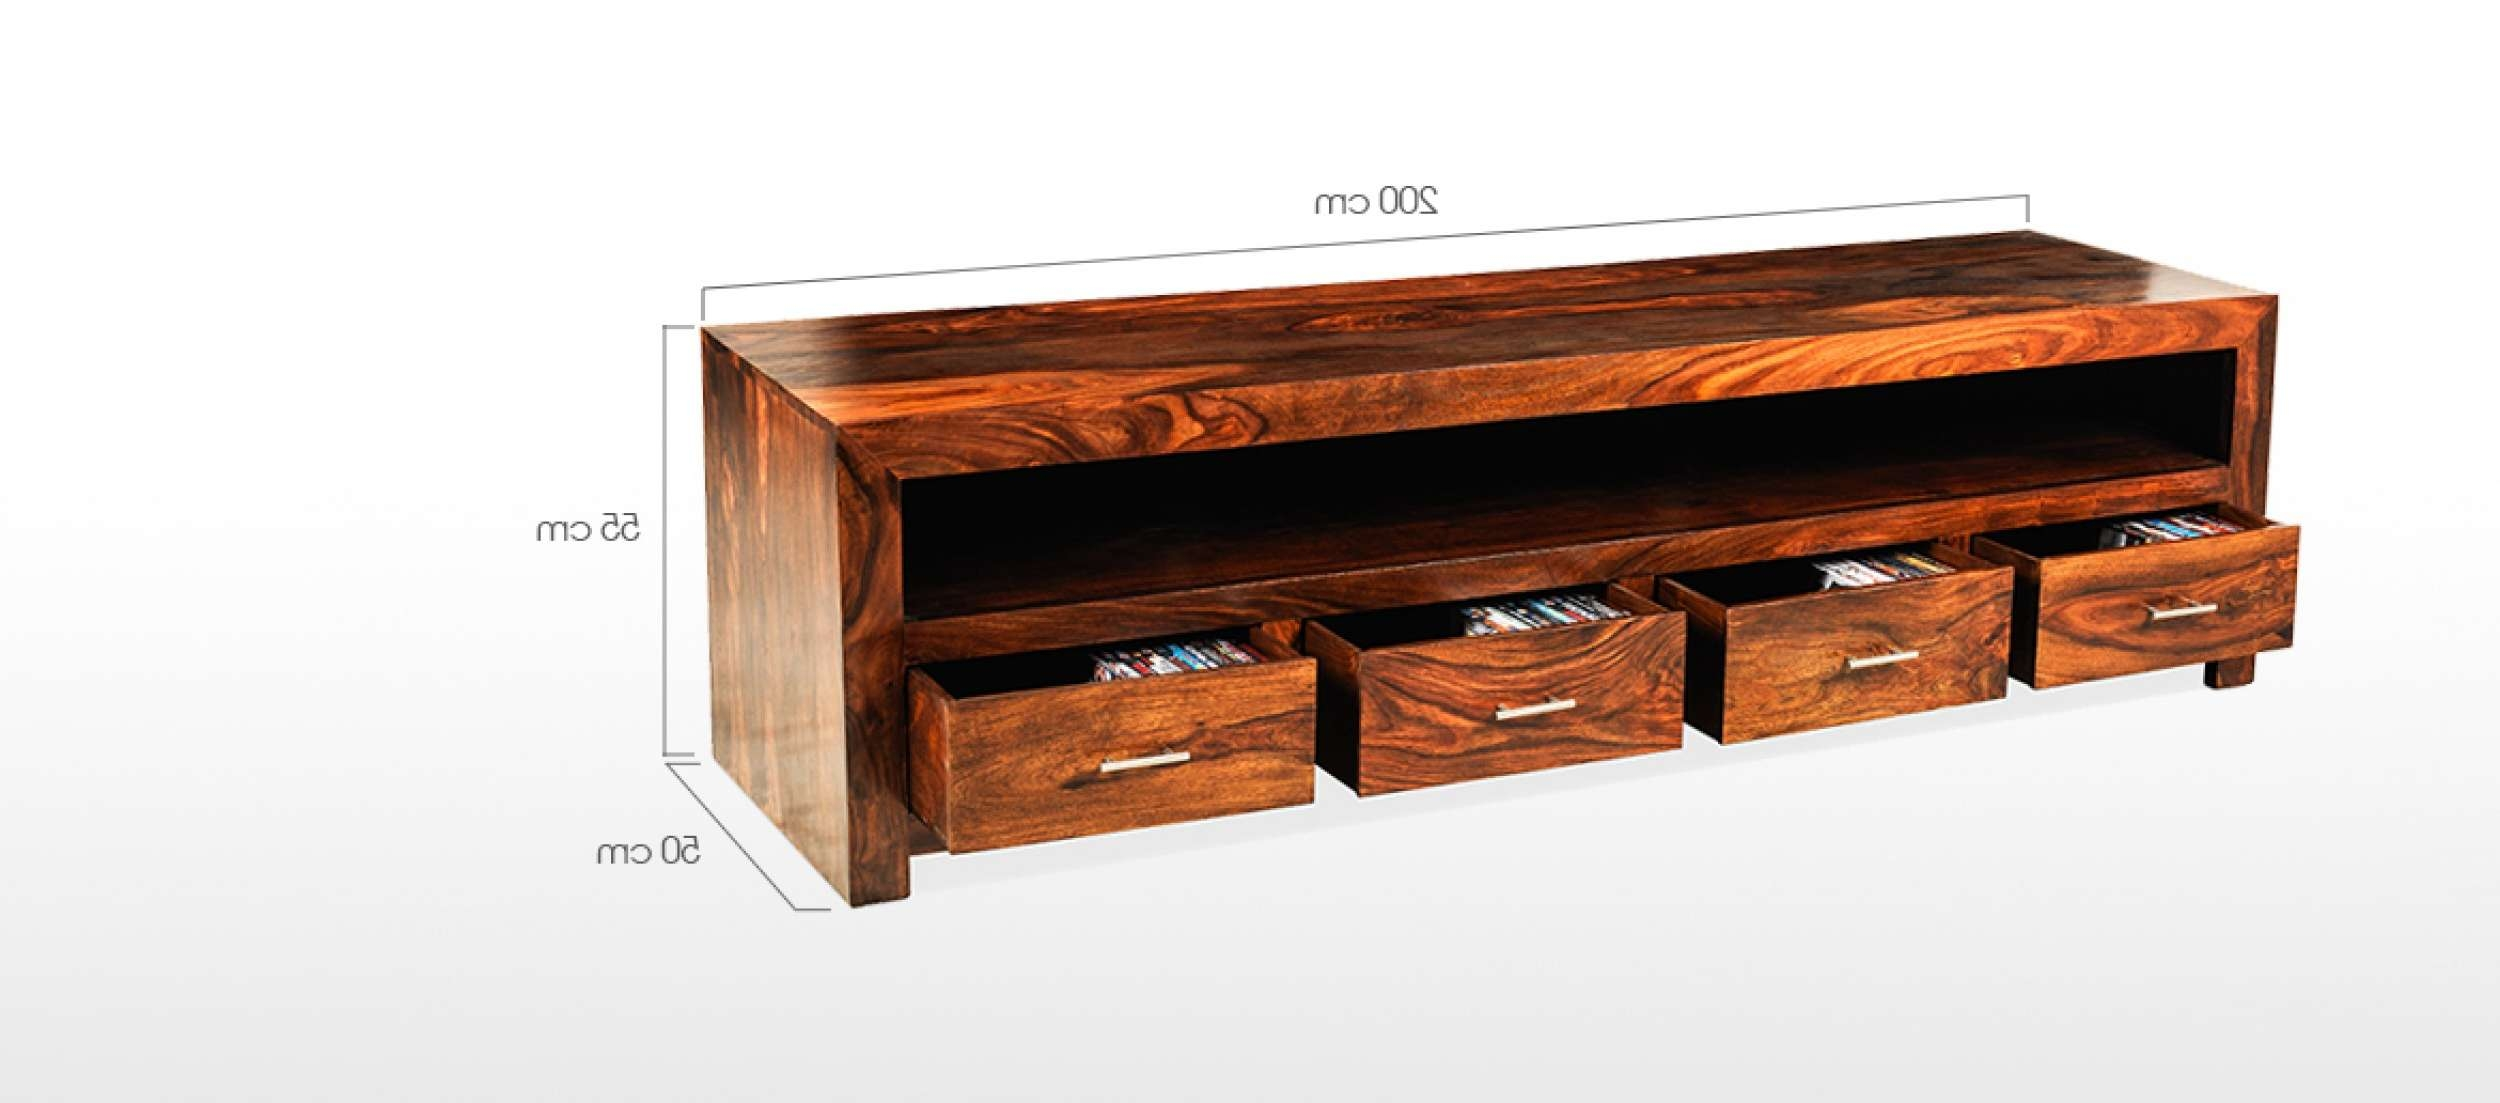 Cube Sheesham Long Plasma Tv Cabinet | Quercus Living For Long Oak Tv Stands (View 6 of 20)